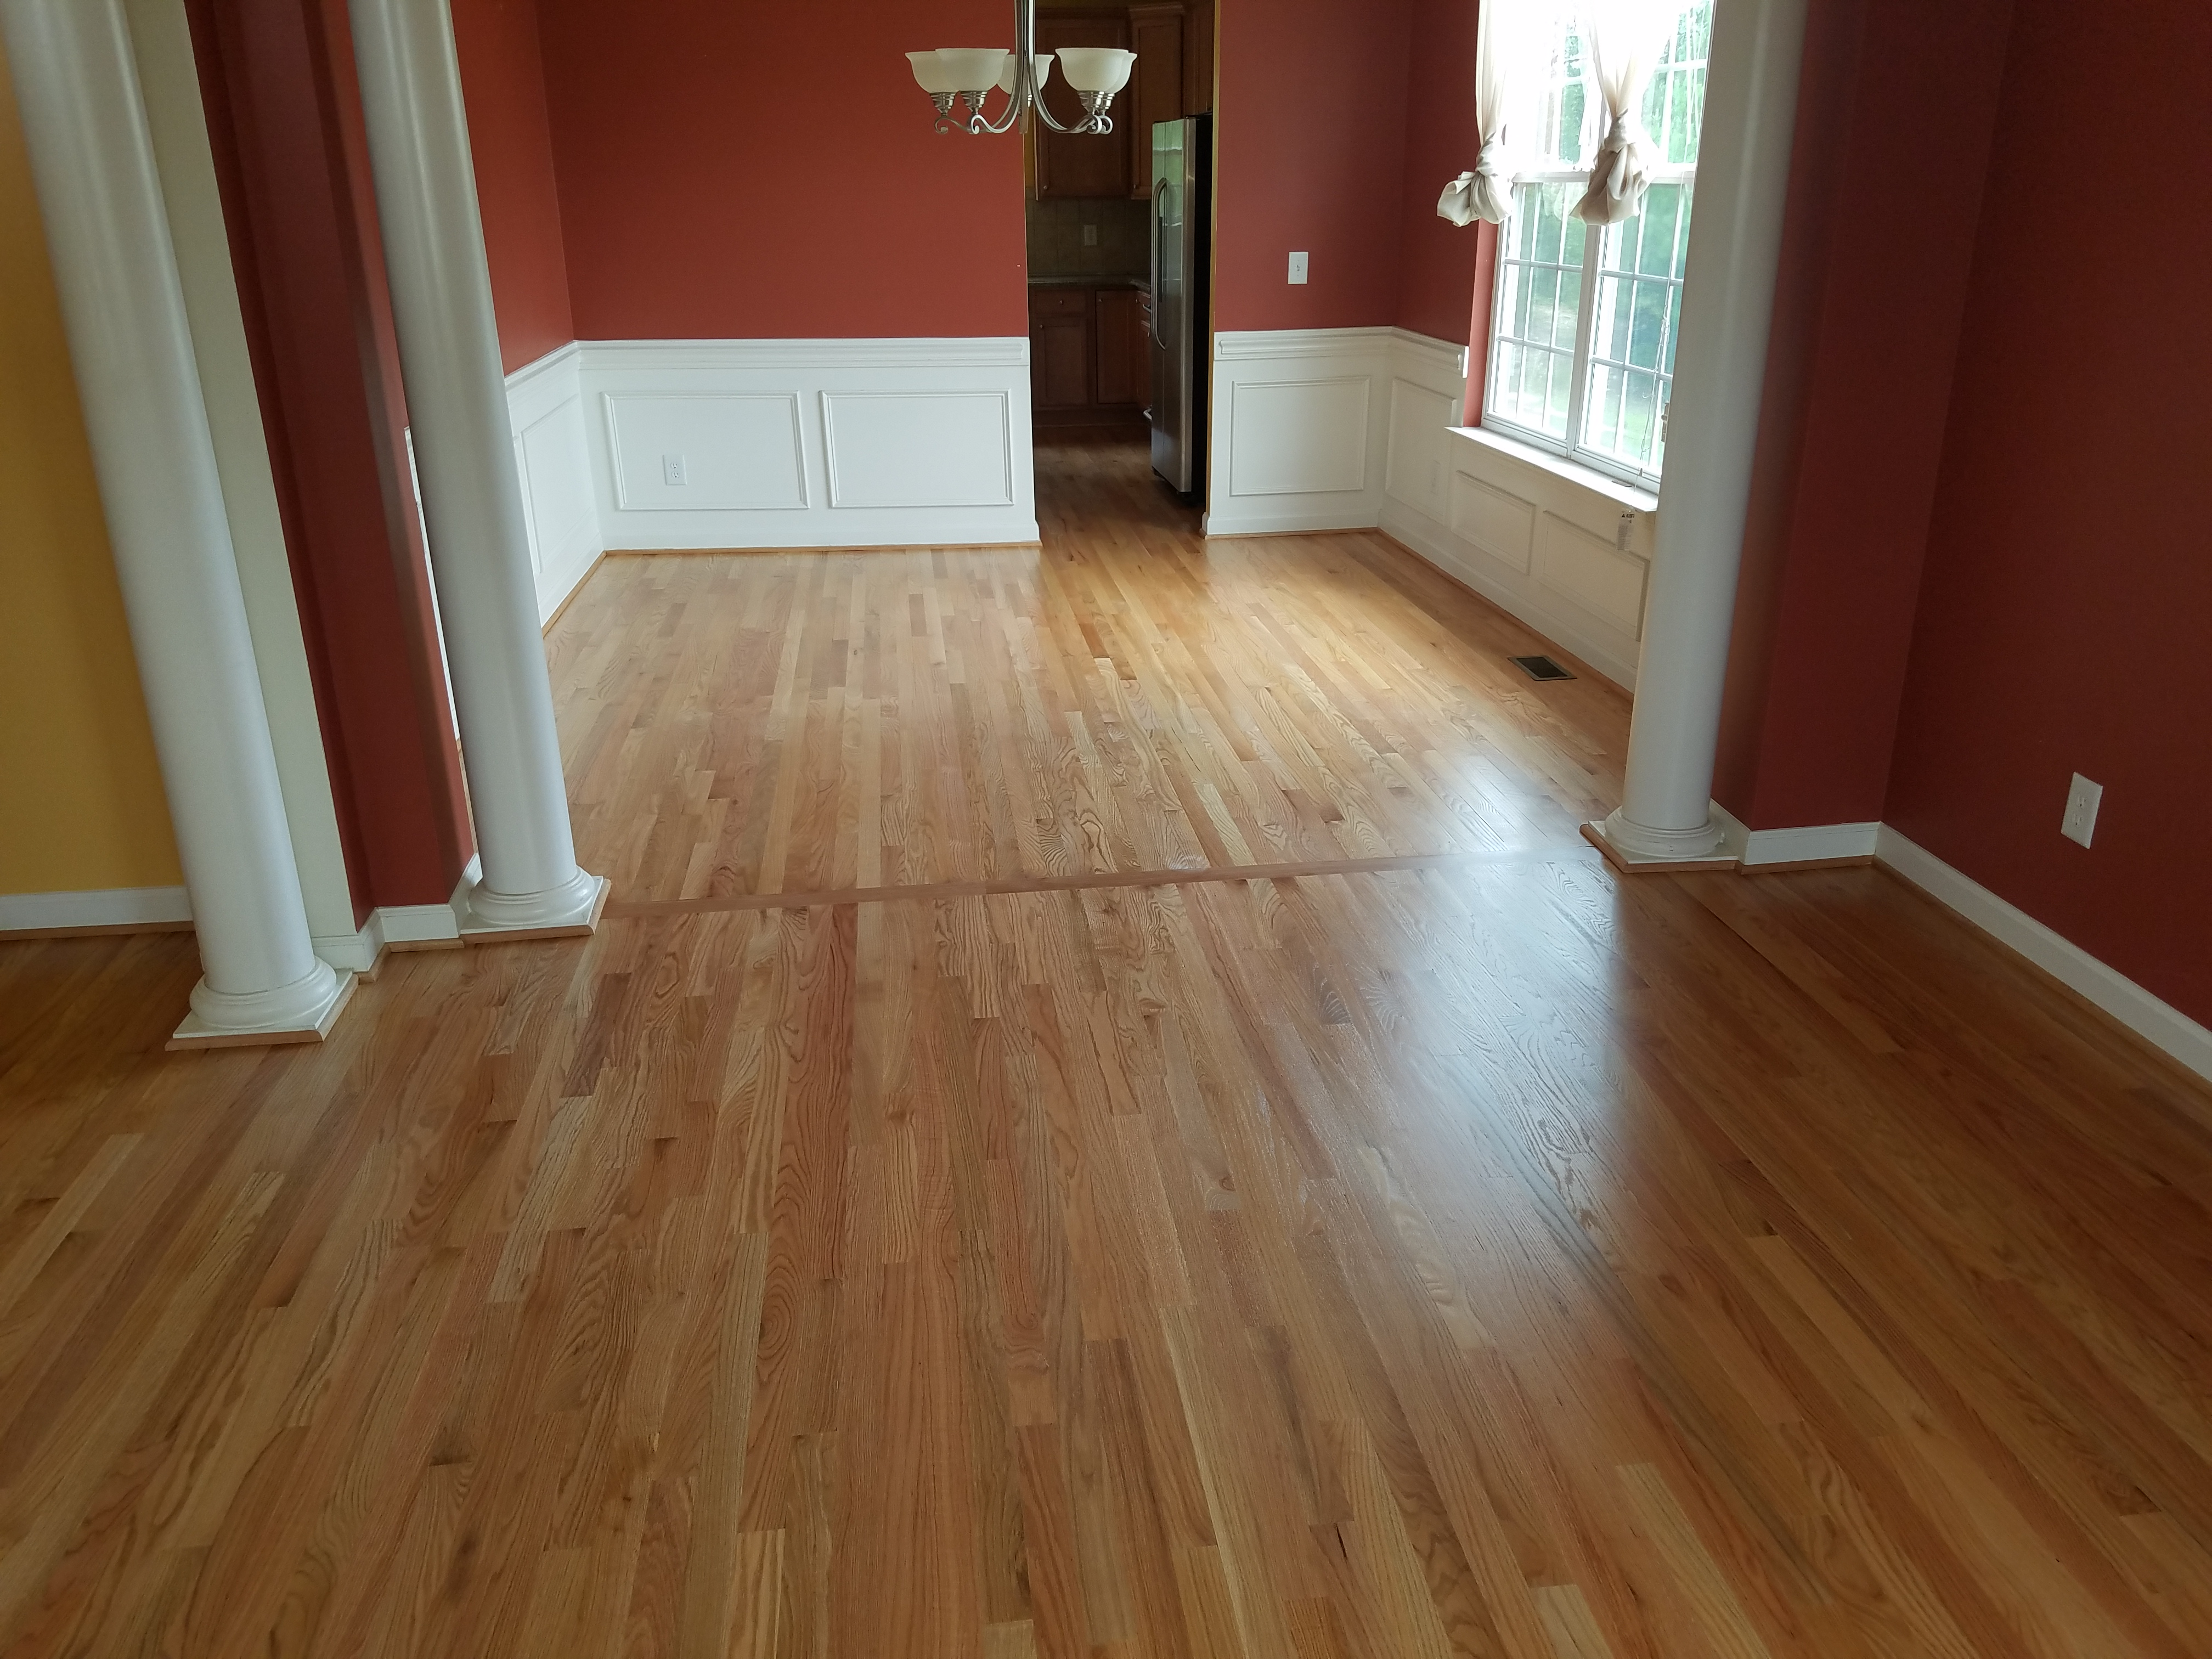 Floor Zone Llc 6704 Old Wake Forest Rd Raleigh Nc 27616 Yp Com